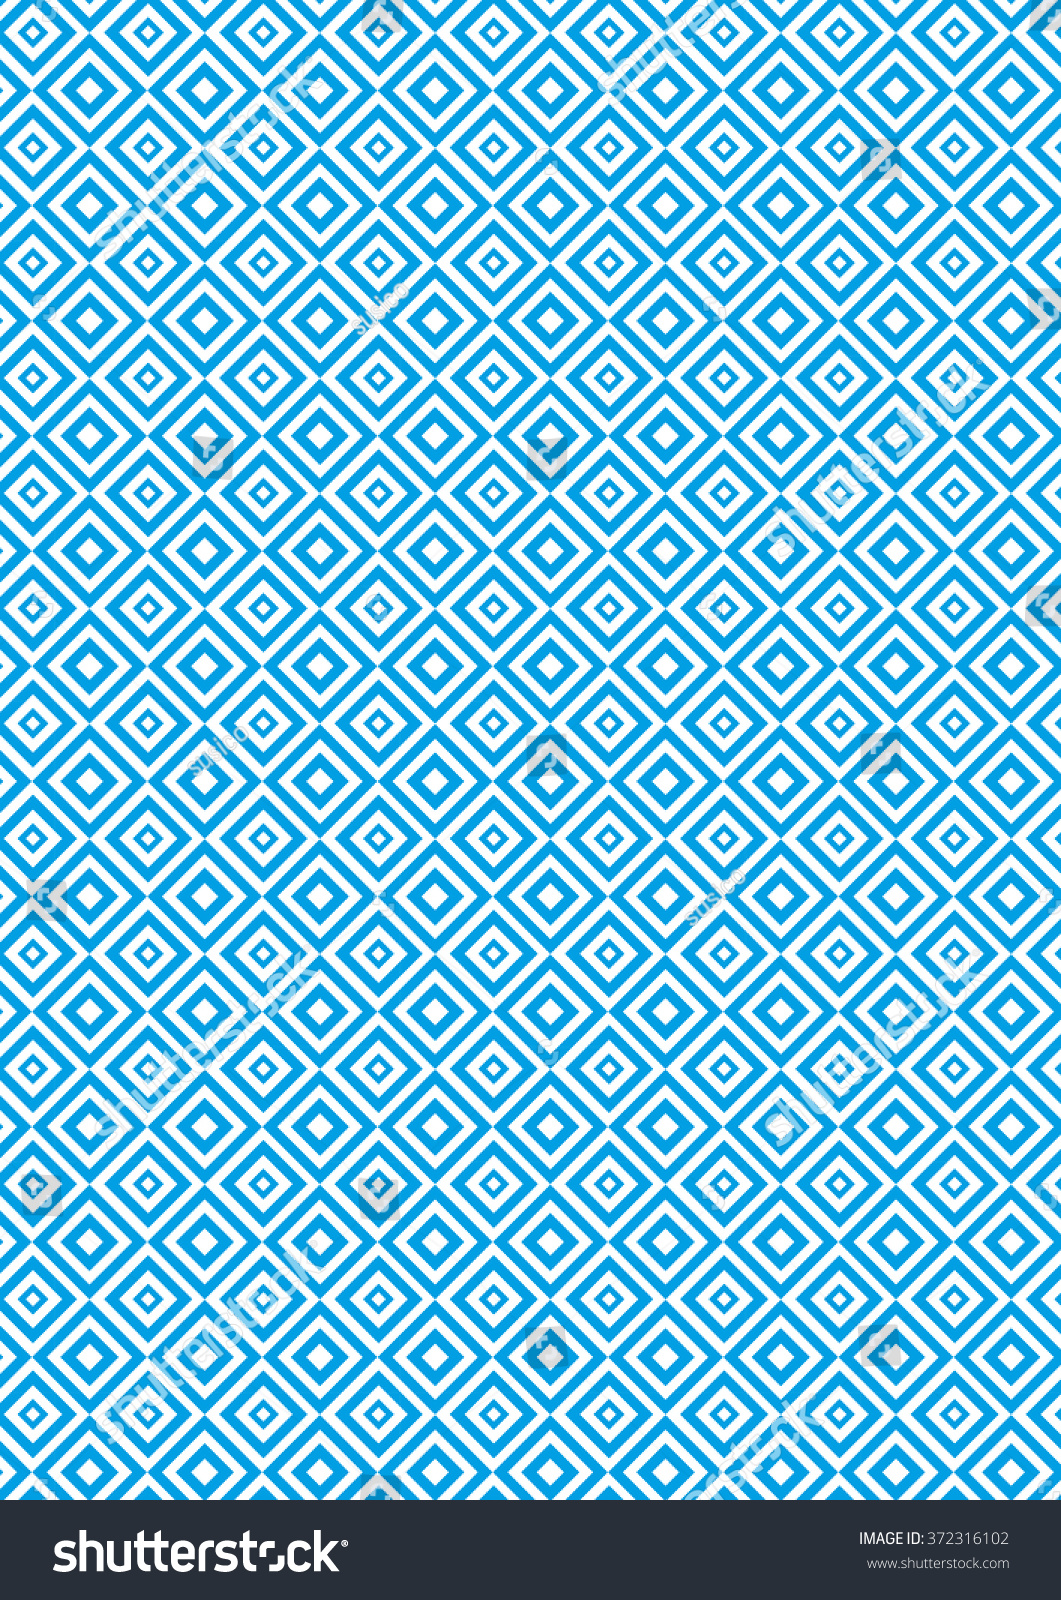 Wallpapers pattern fills web page backgrounds surface textures - Vector Pattern Texture Can Be Used For Wallpaper Pattern Fills Web Page Background